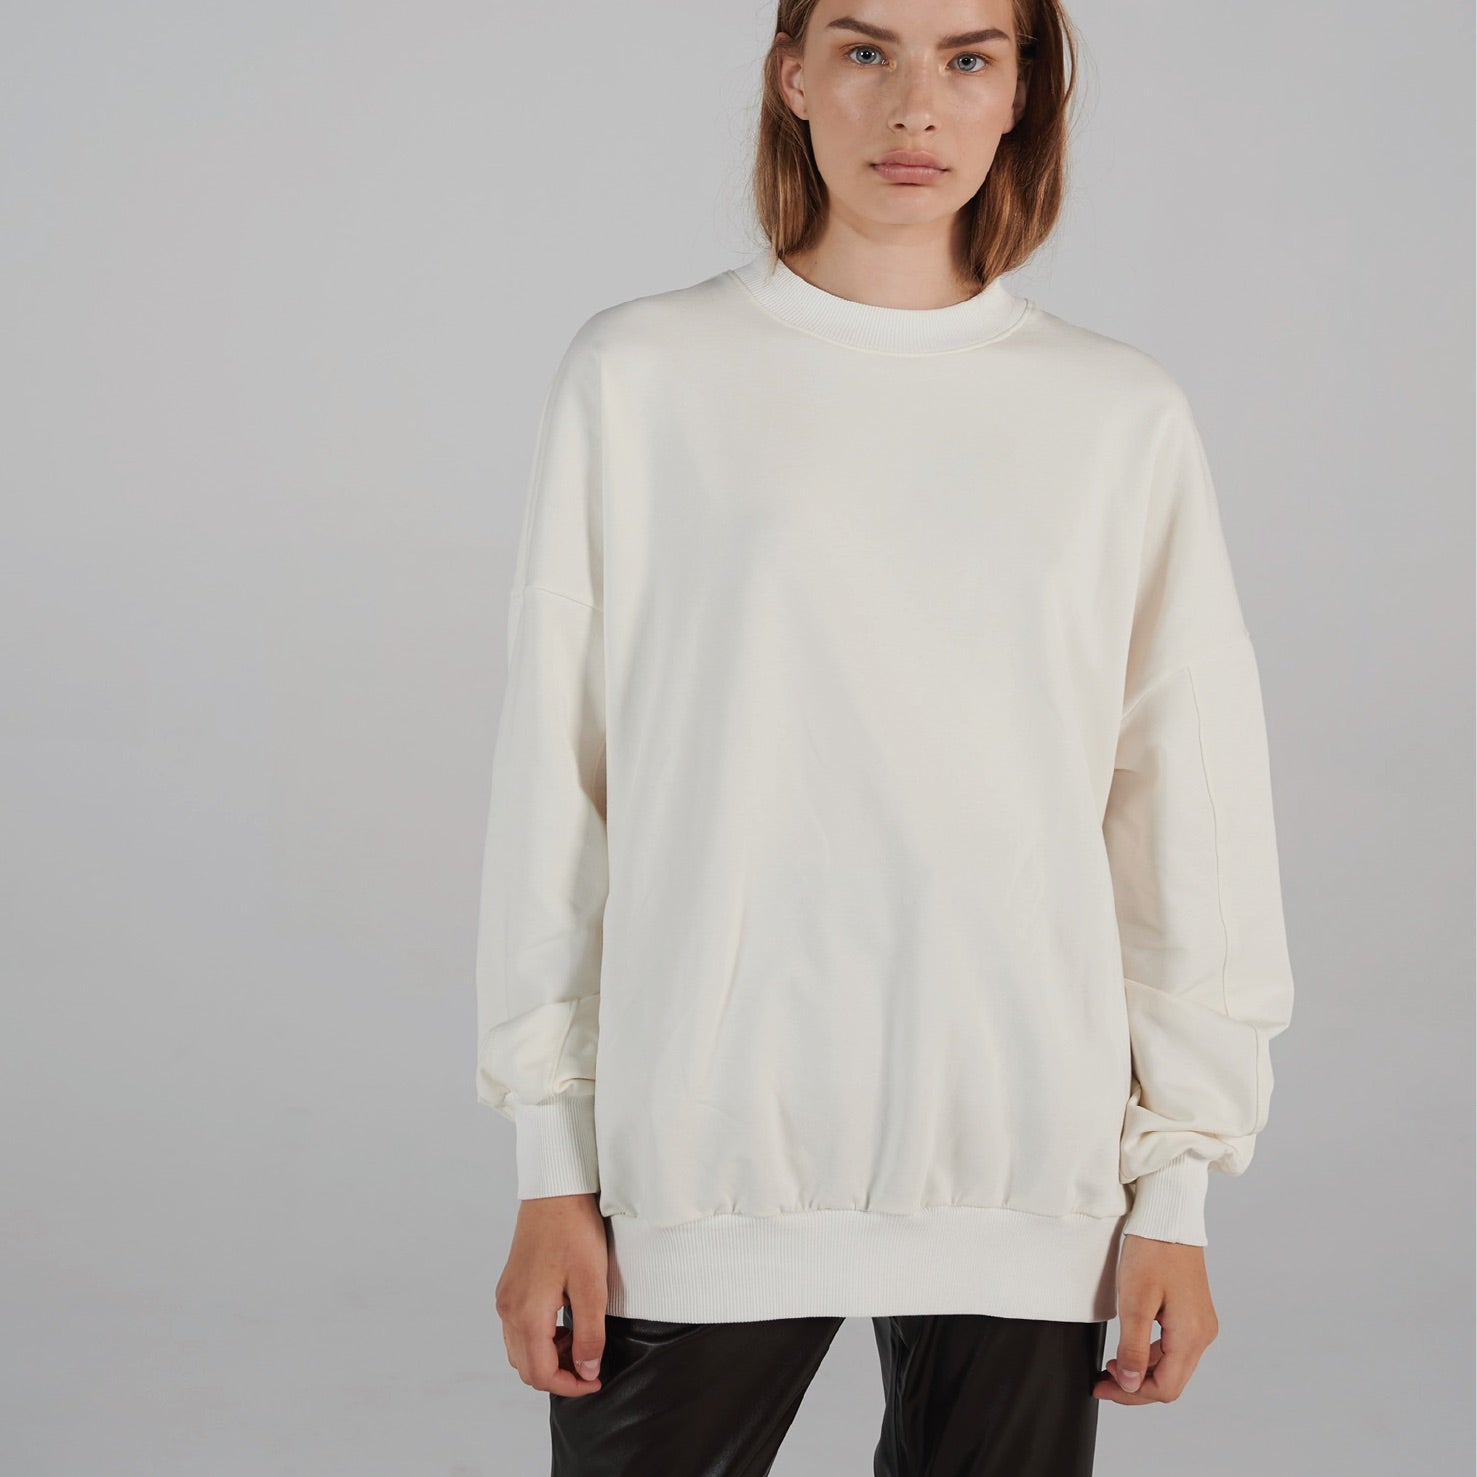 Oversized Sweater White | LIFETIME collection